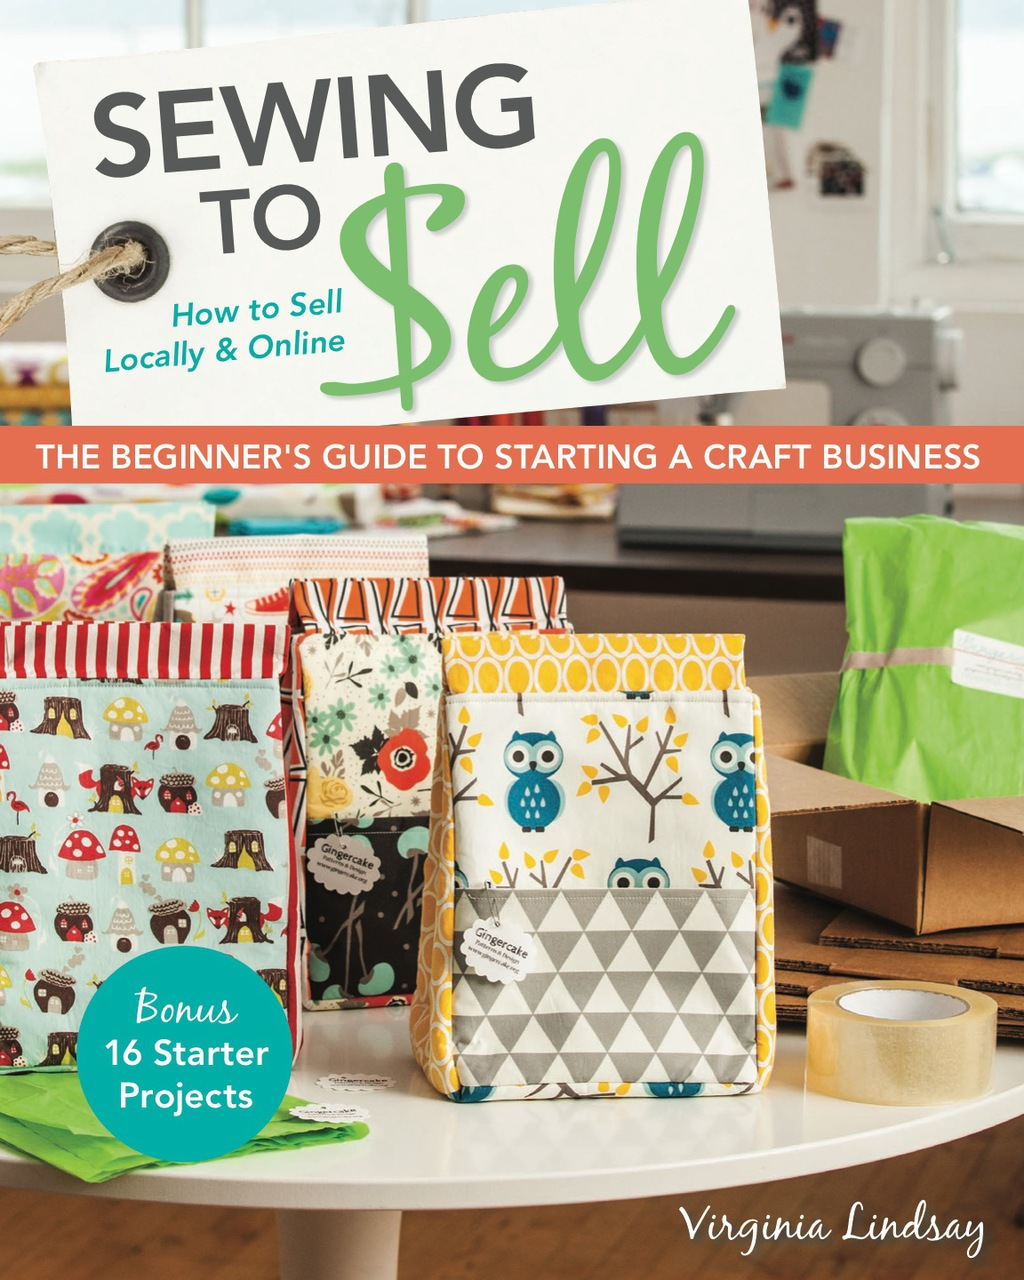 Sewing to Sell—The Beginner's Guide to Starting a Craft Business: Bonus—16 Starter Projects • How to Sell Locally & Online (ebook) eBooks